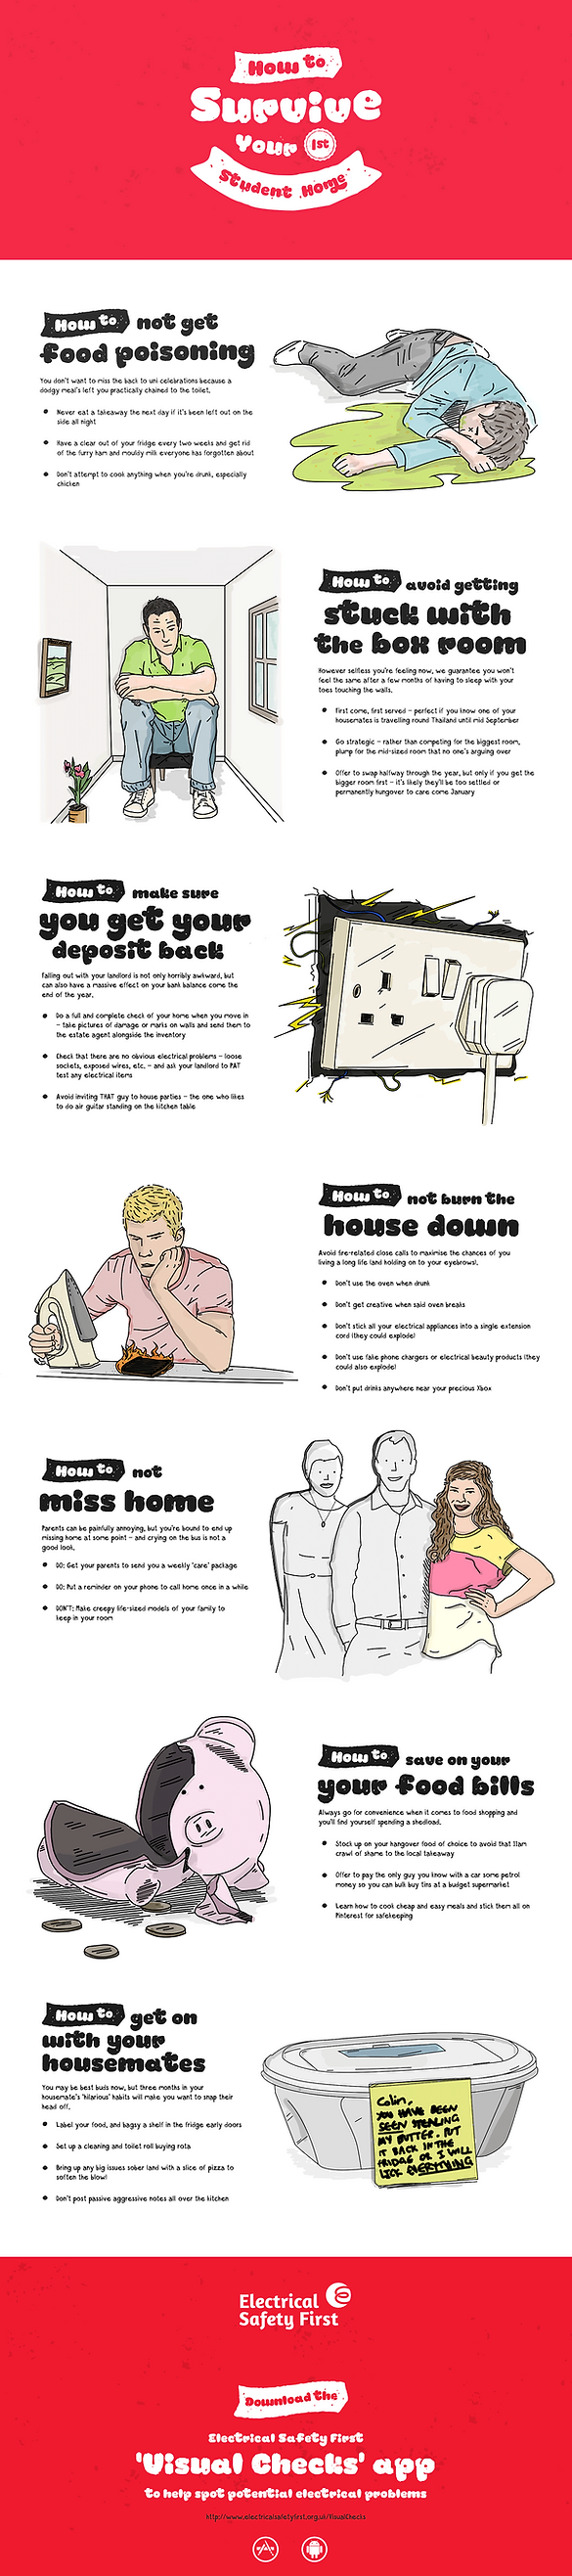 electrical safety first how to survive your first student house